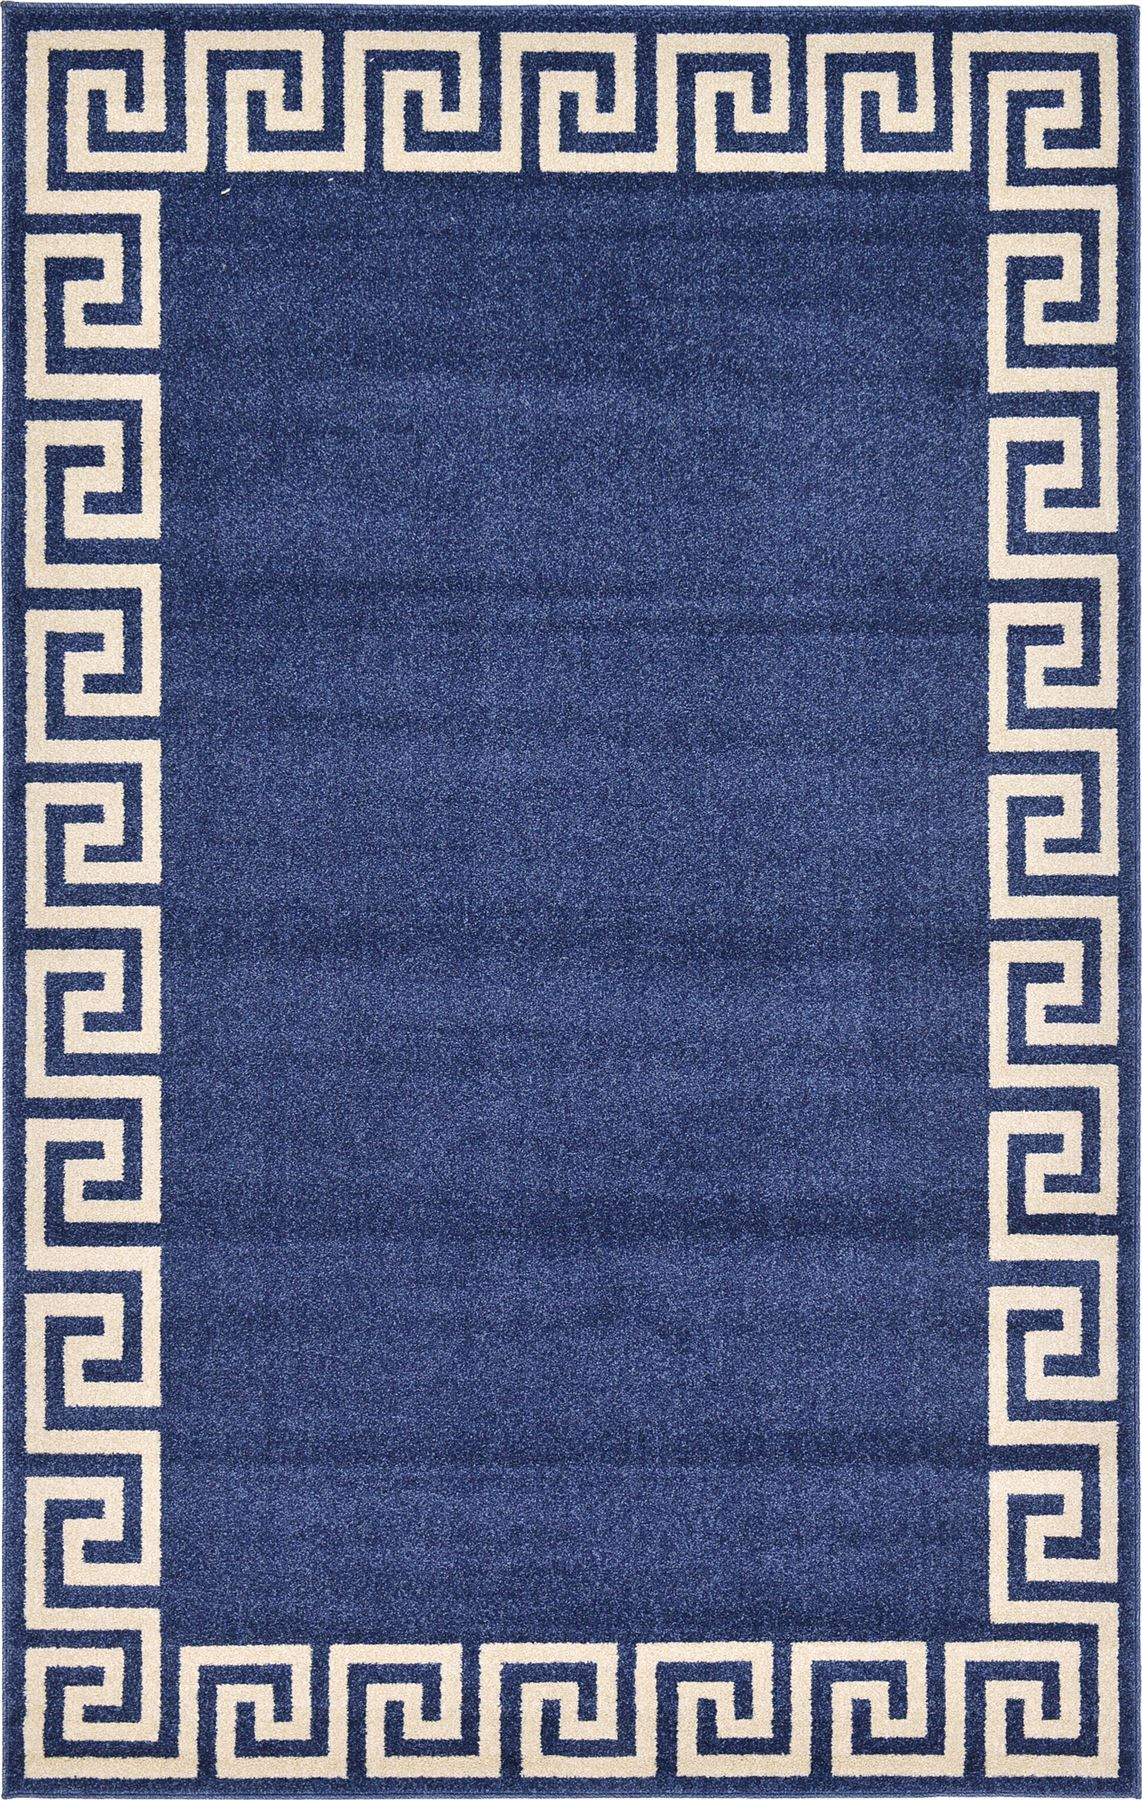 Modern rug greek key rug floor mat area rugs contemporary for Area carpets and rugs